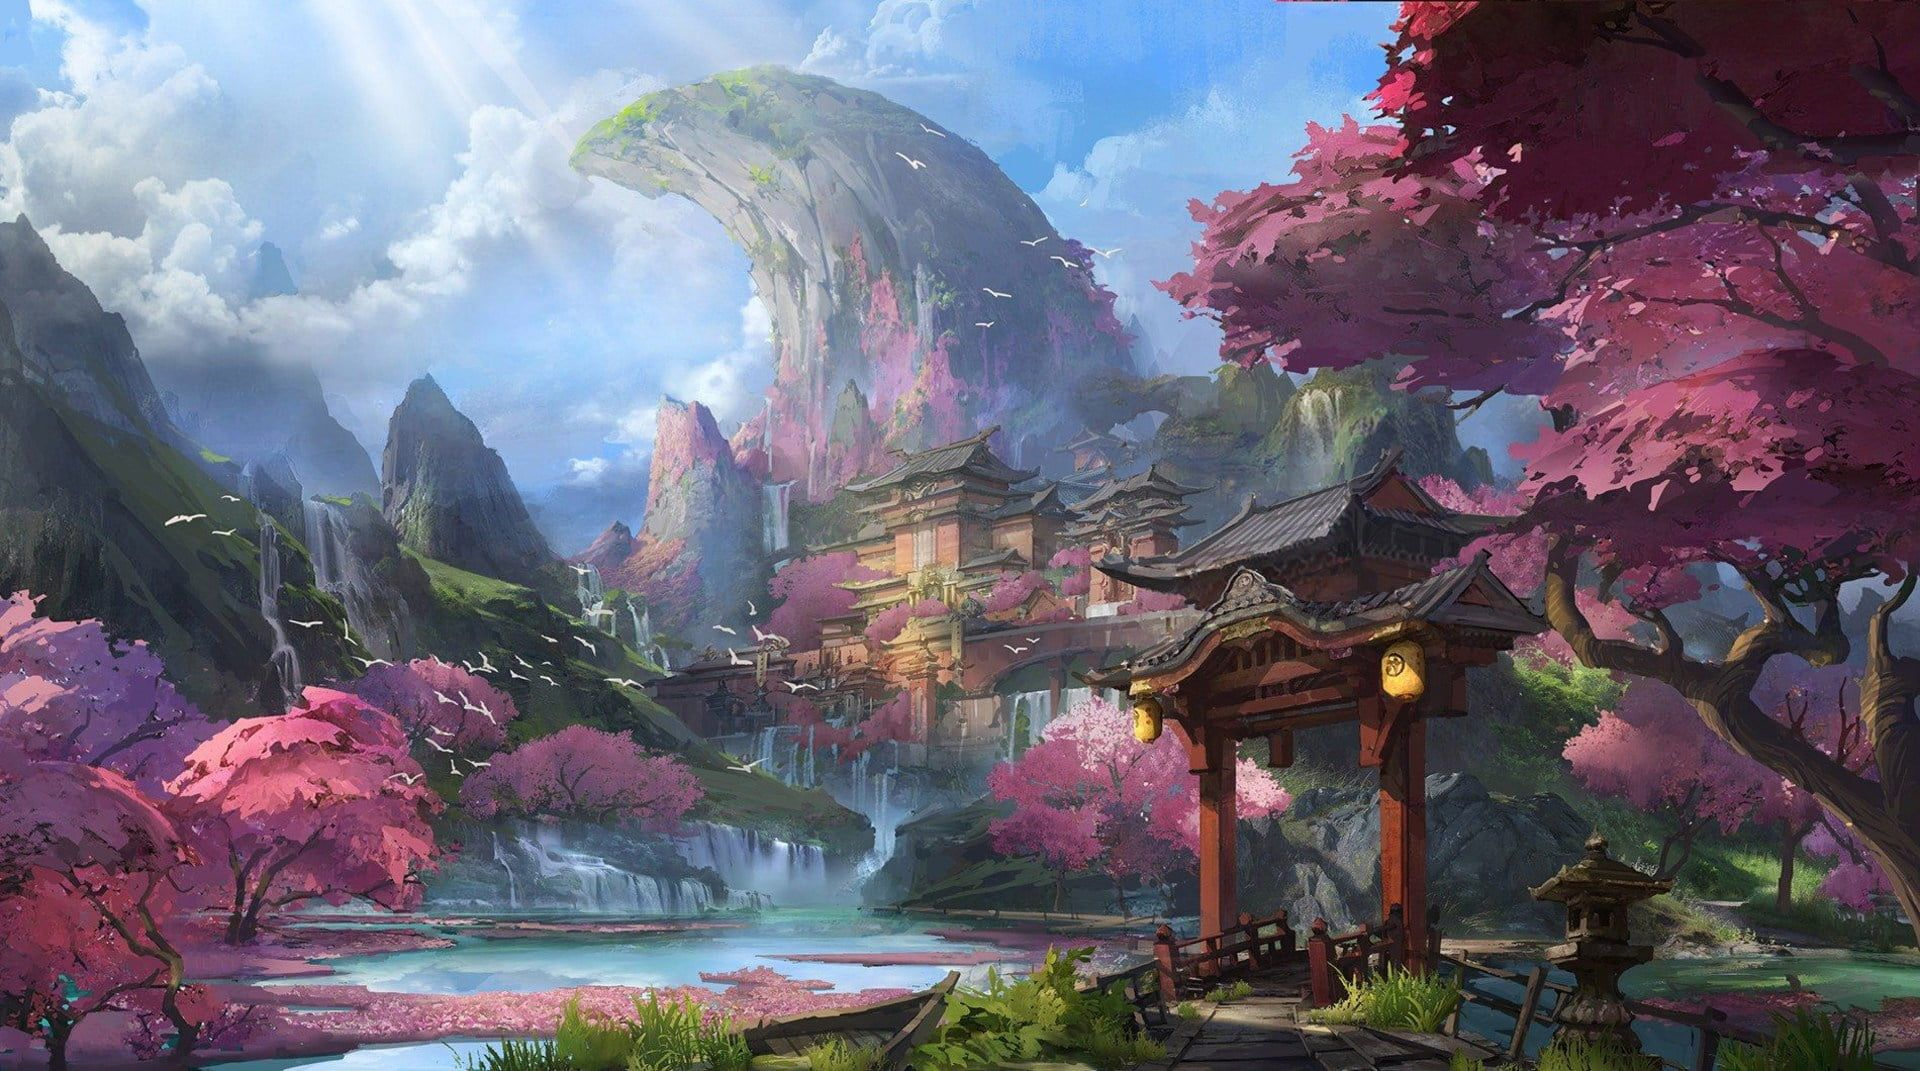 Anime Fantasy Landscape Wallpapers 1080p For Free Wallpaper